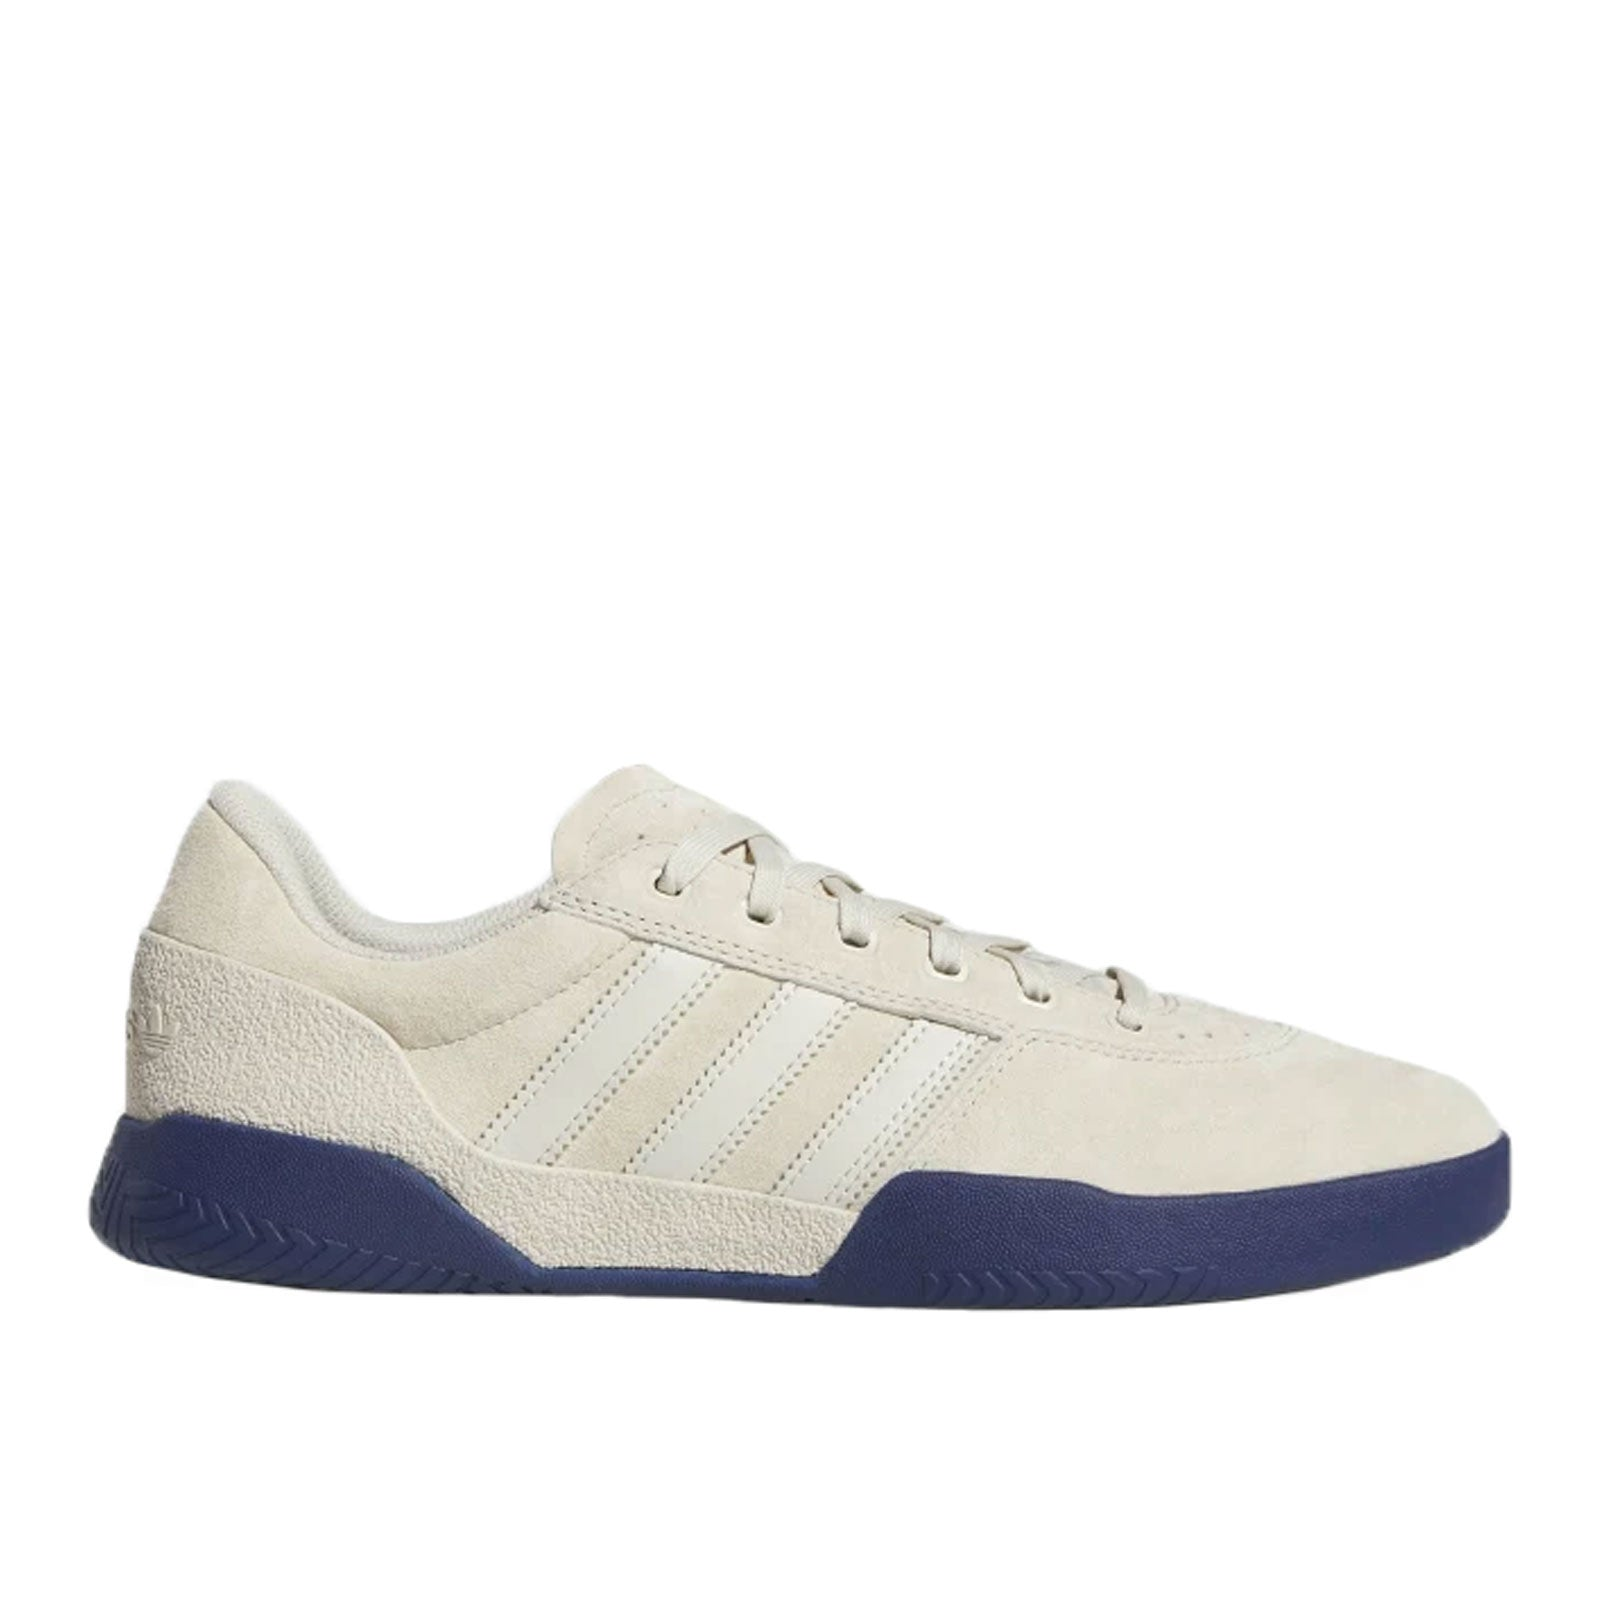 Adidas City Cup – Milano Shoes